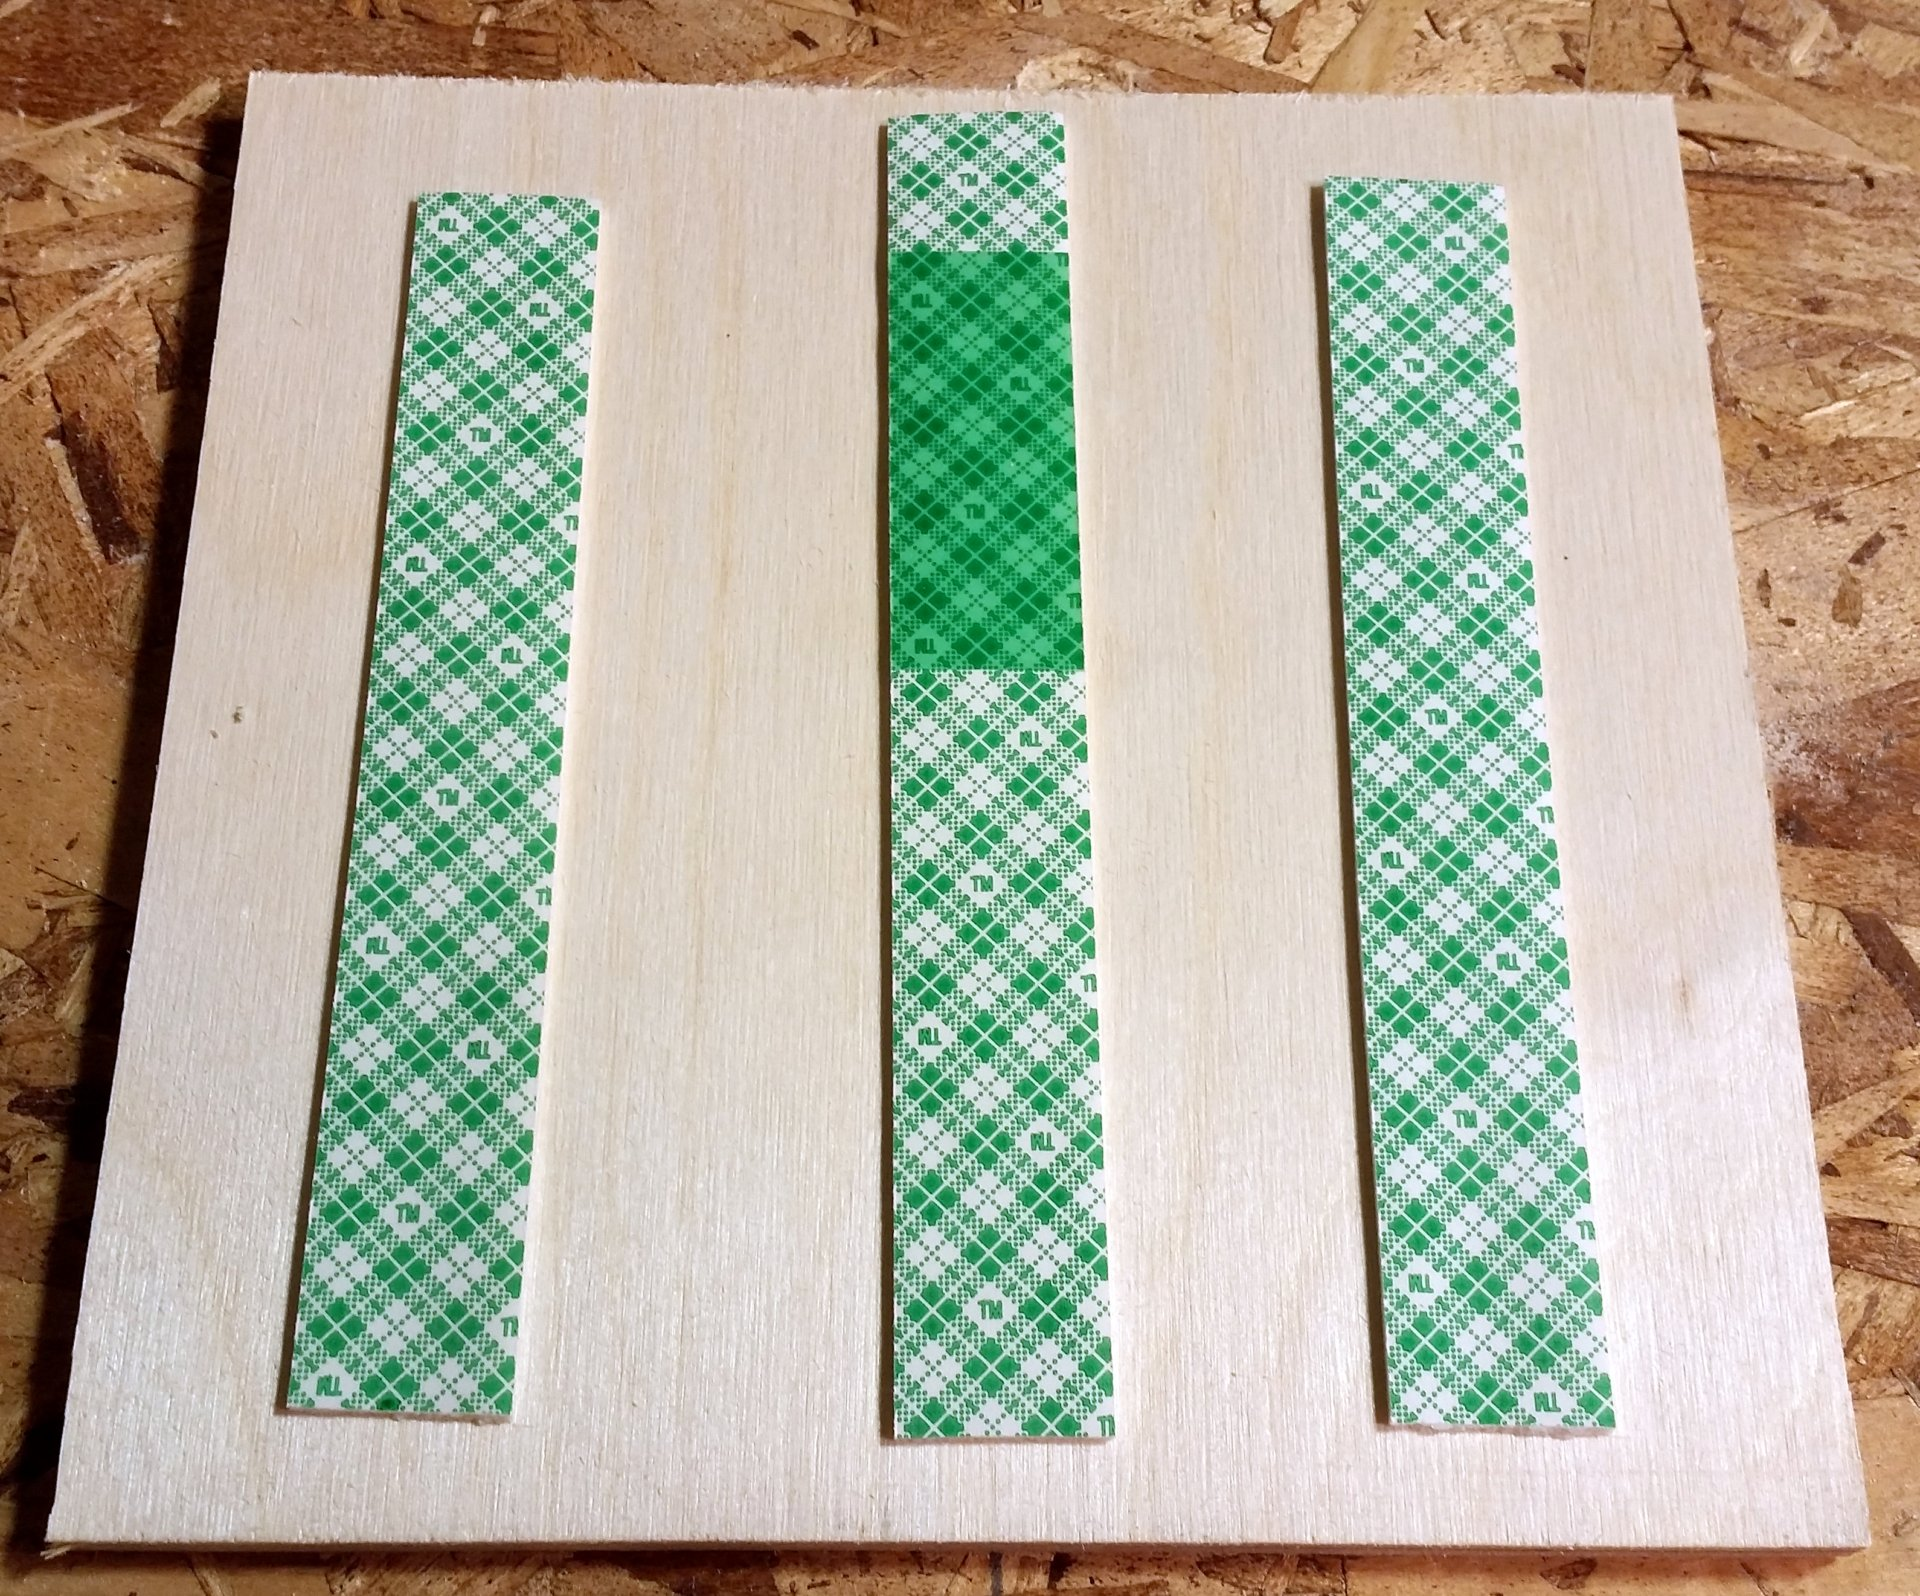 "Quarter Inch 5x5"" Baltic Plywood with 3M Mounting Tape Strips"